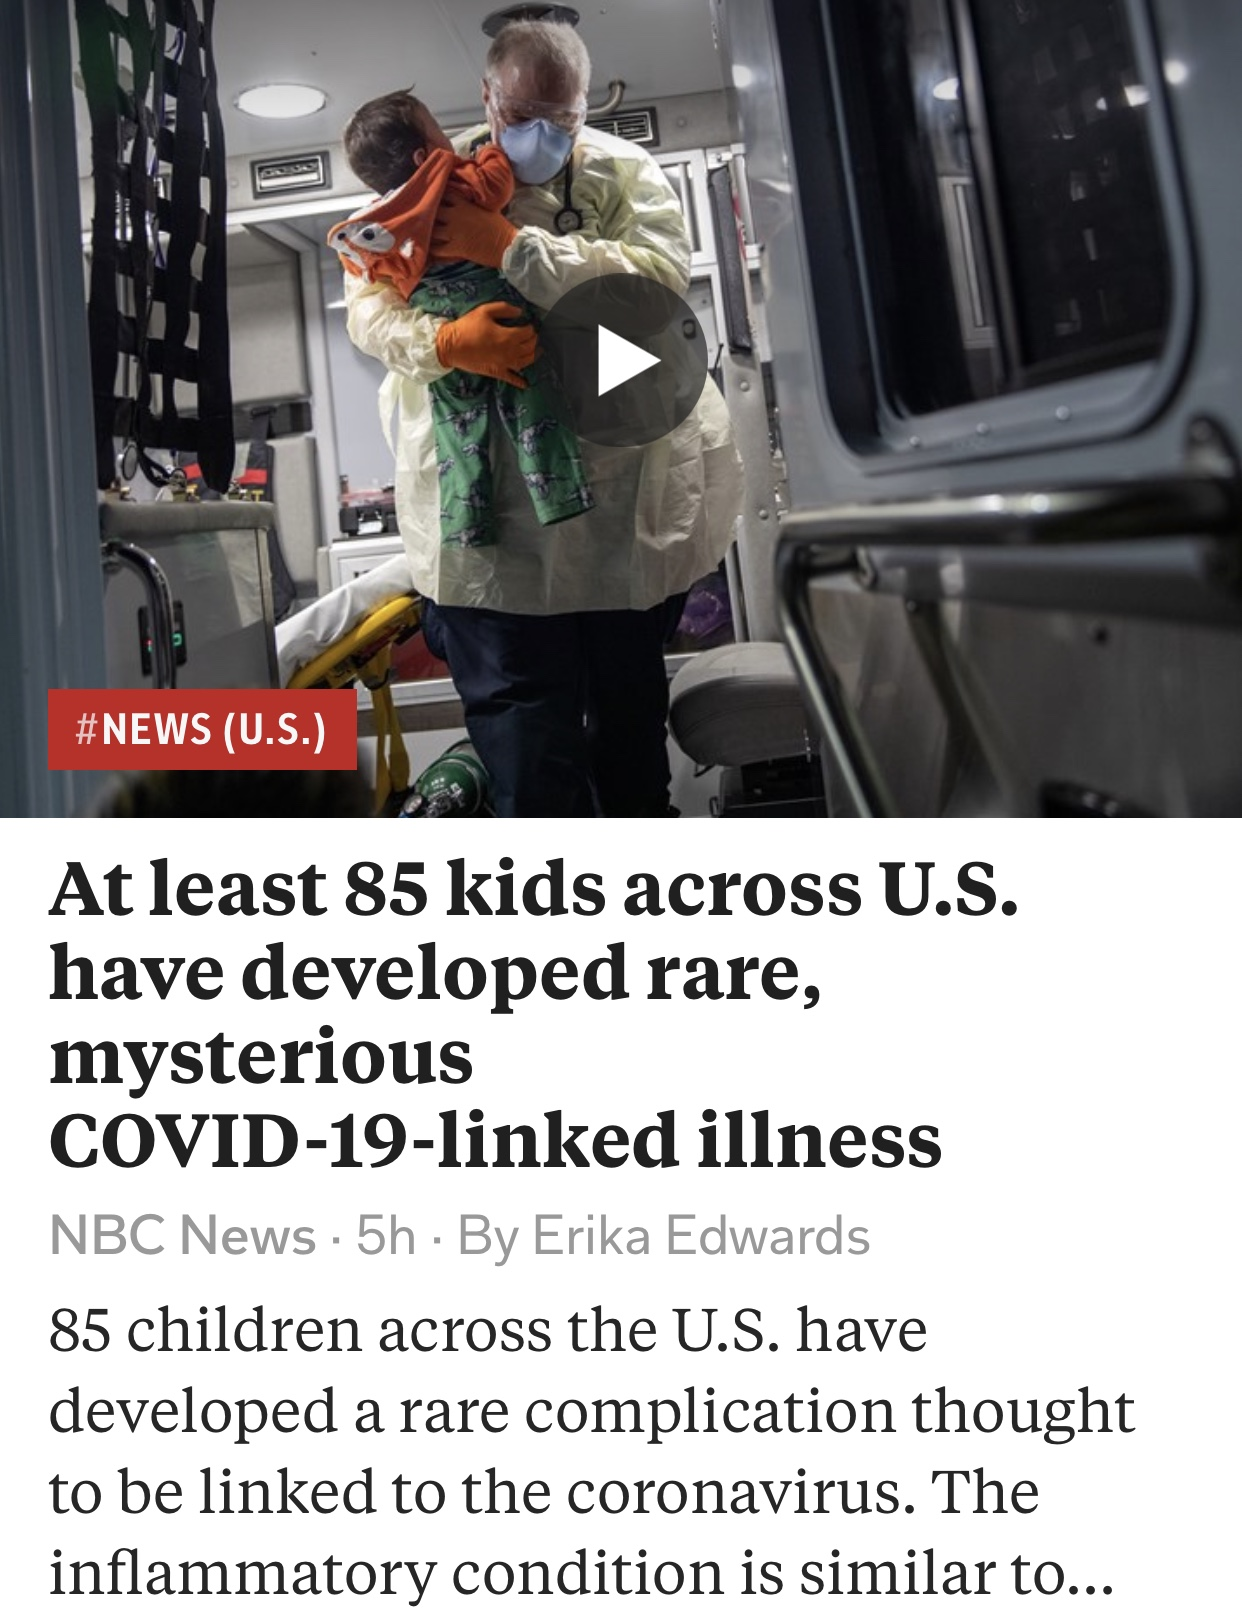 At least 85 kids across U.S. have developed rare, mysterious COVID-19-linked illness